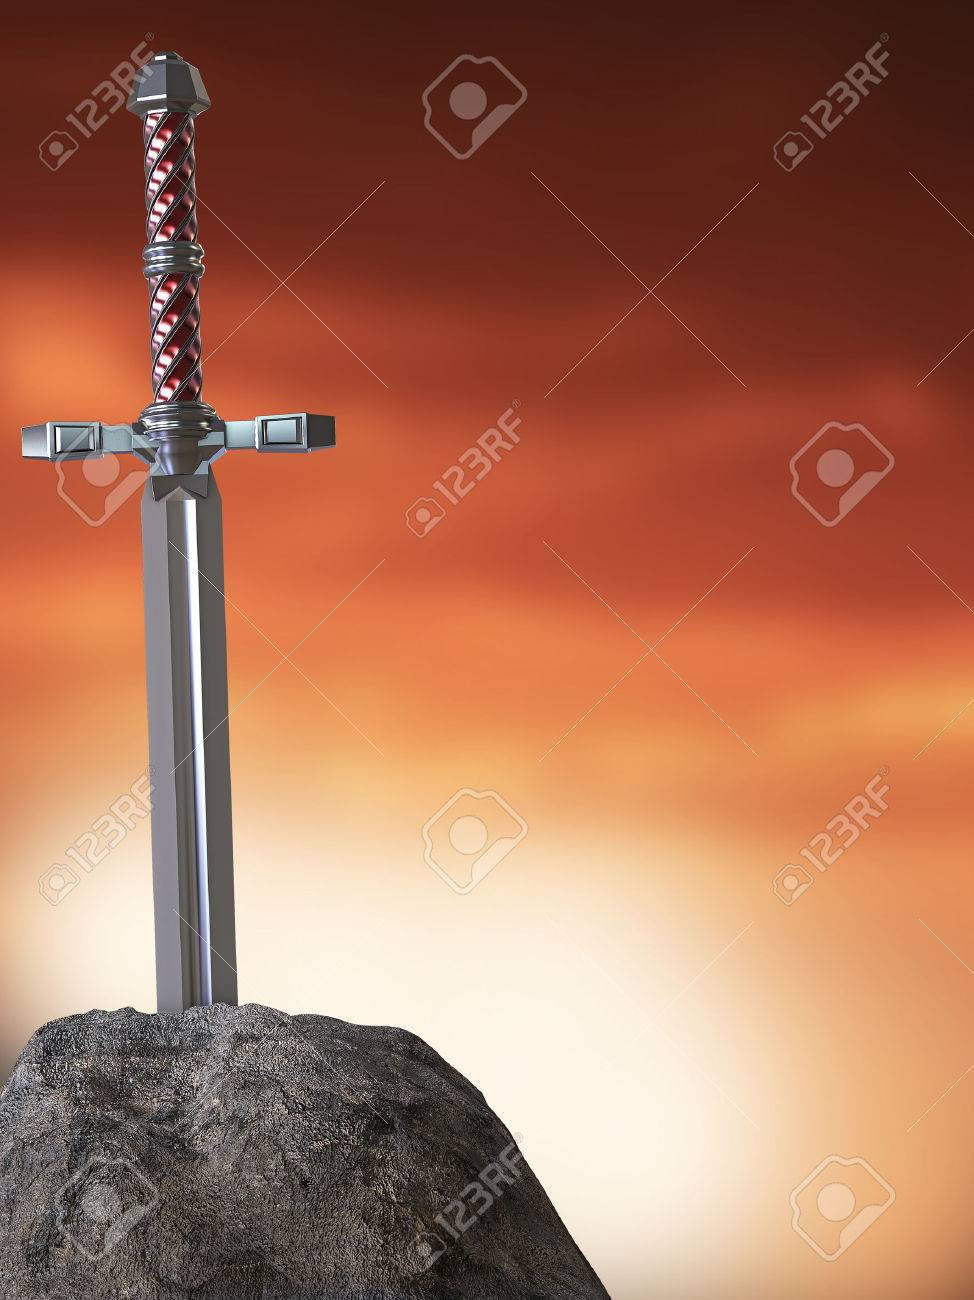 Stock Photo Sword Excalibur King Arthur Stuck In The Rock Stone Isolated 3d Render Metaphor Of Candidate Applicant Test